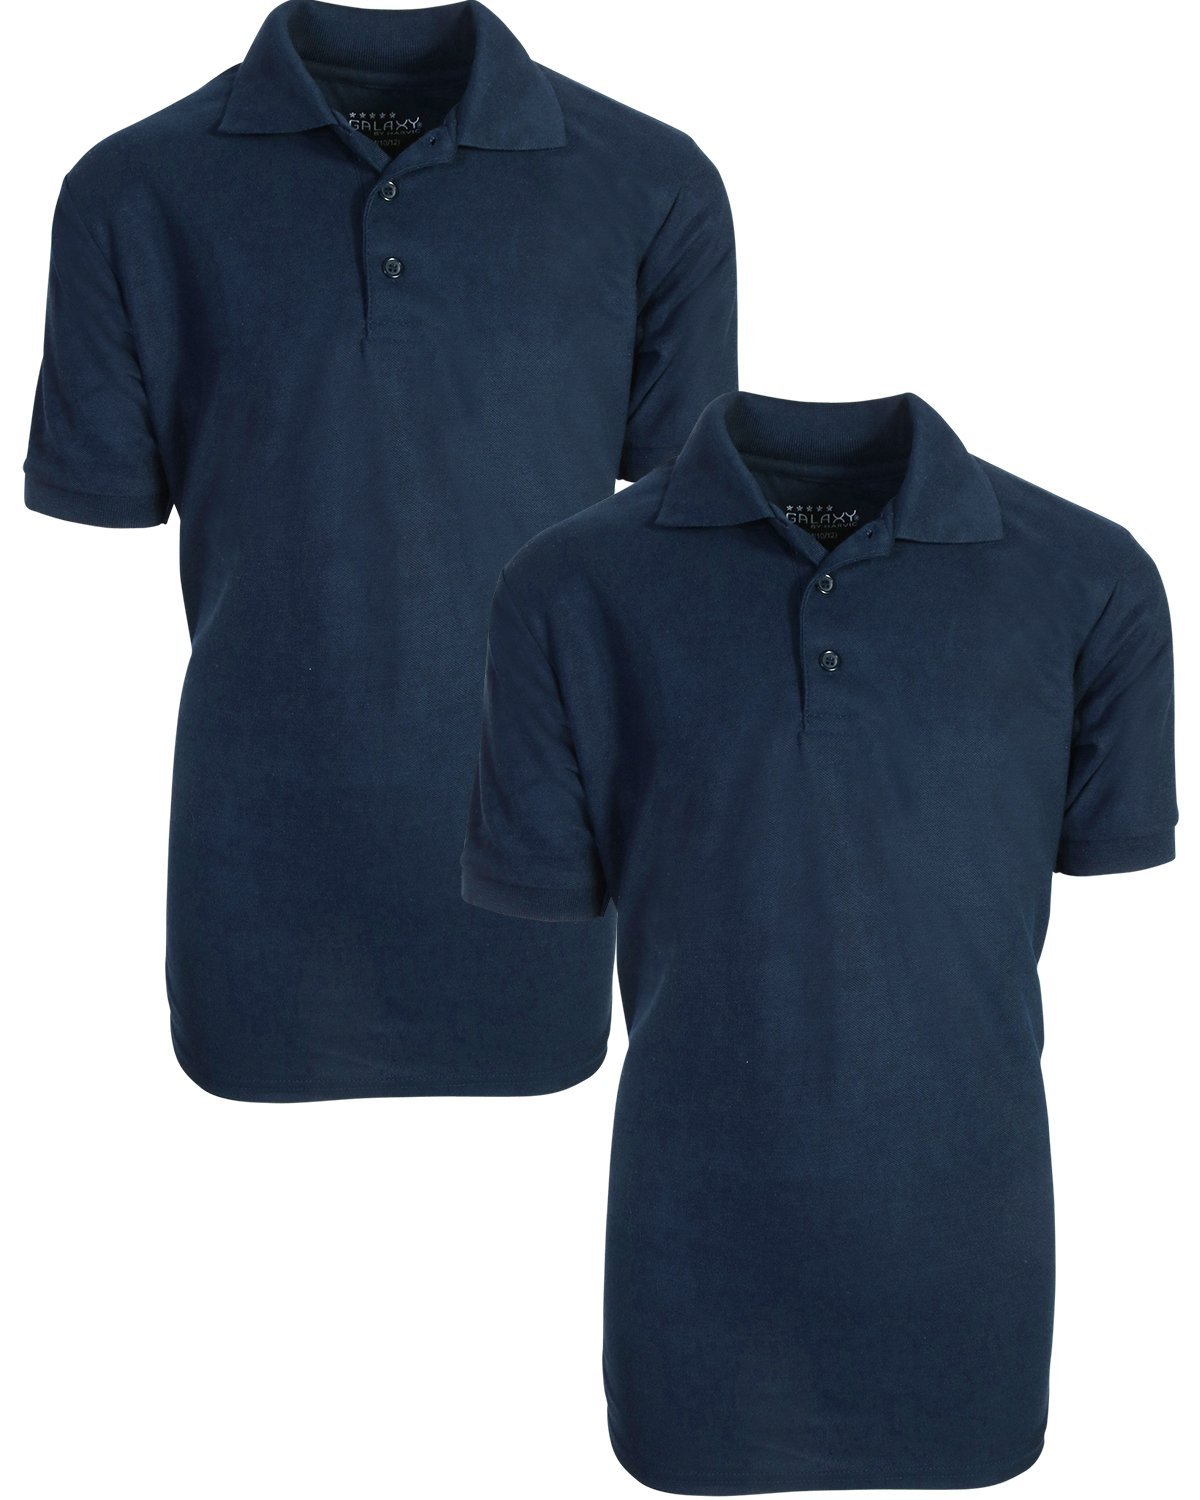 Galaxy by Harvic Boy's Short Sleeve Solid Polo Pique Shirt (2 Pack), Navy/Navy, X-Large'